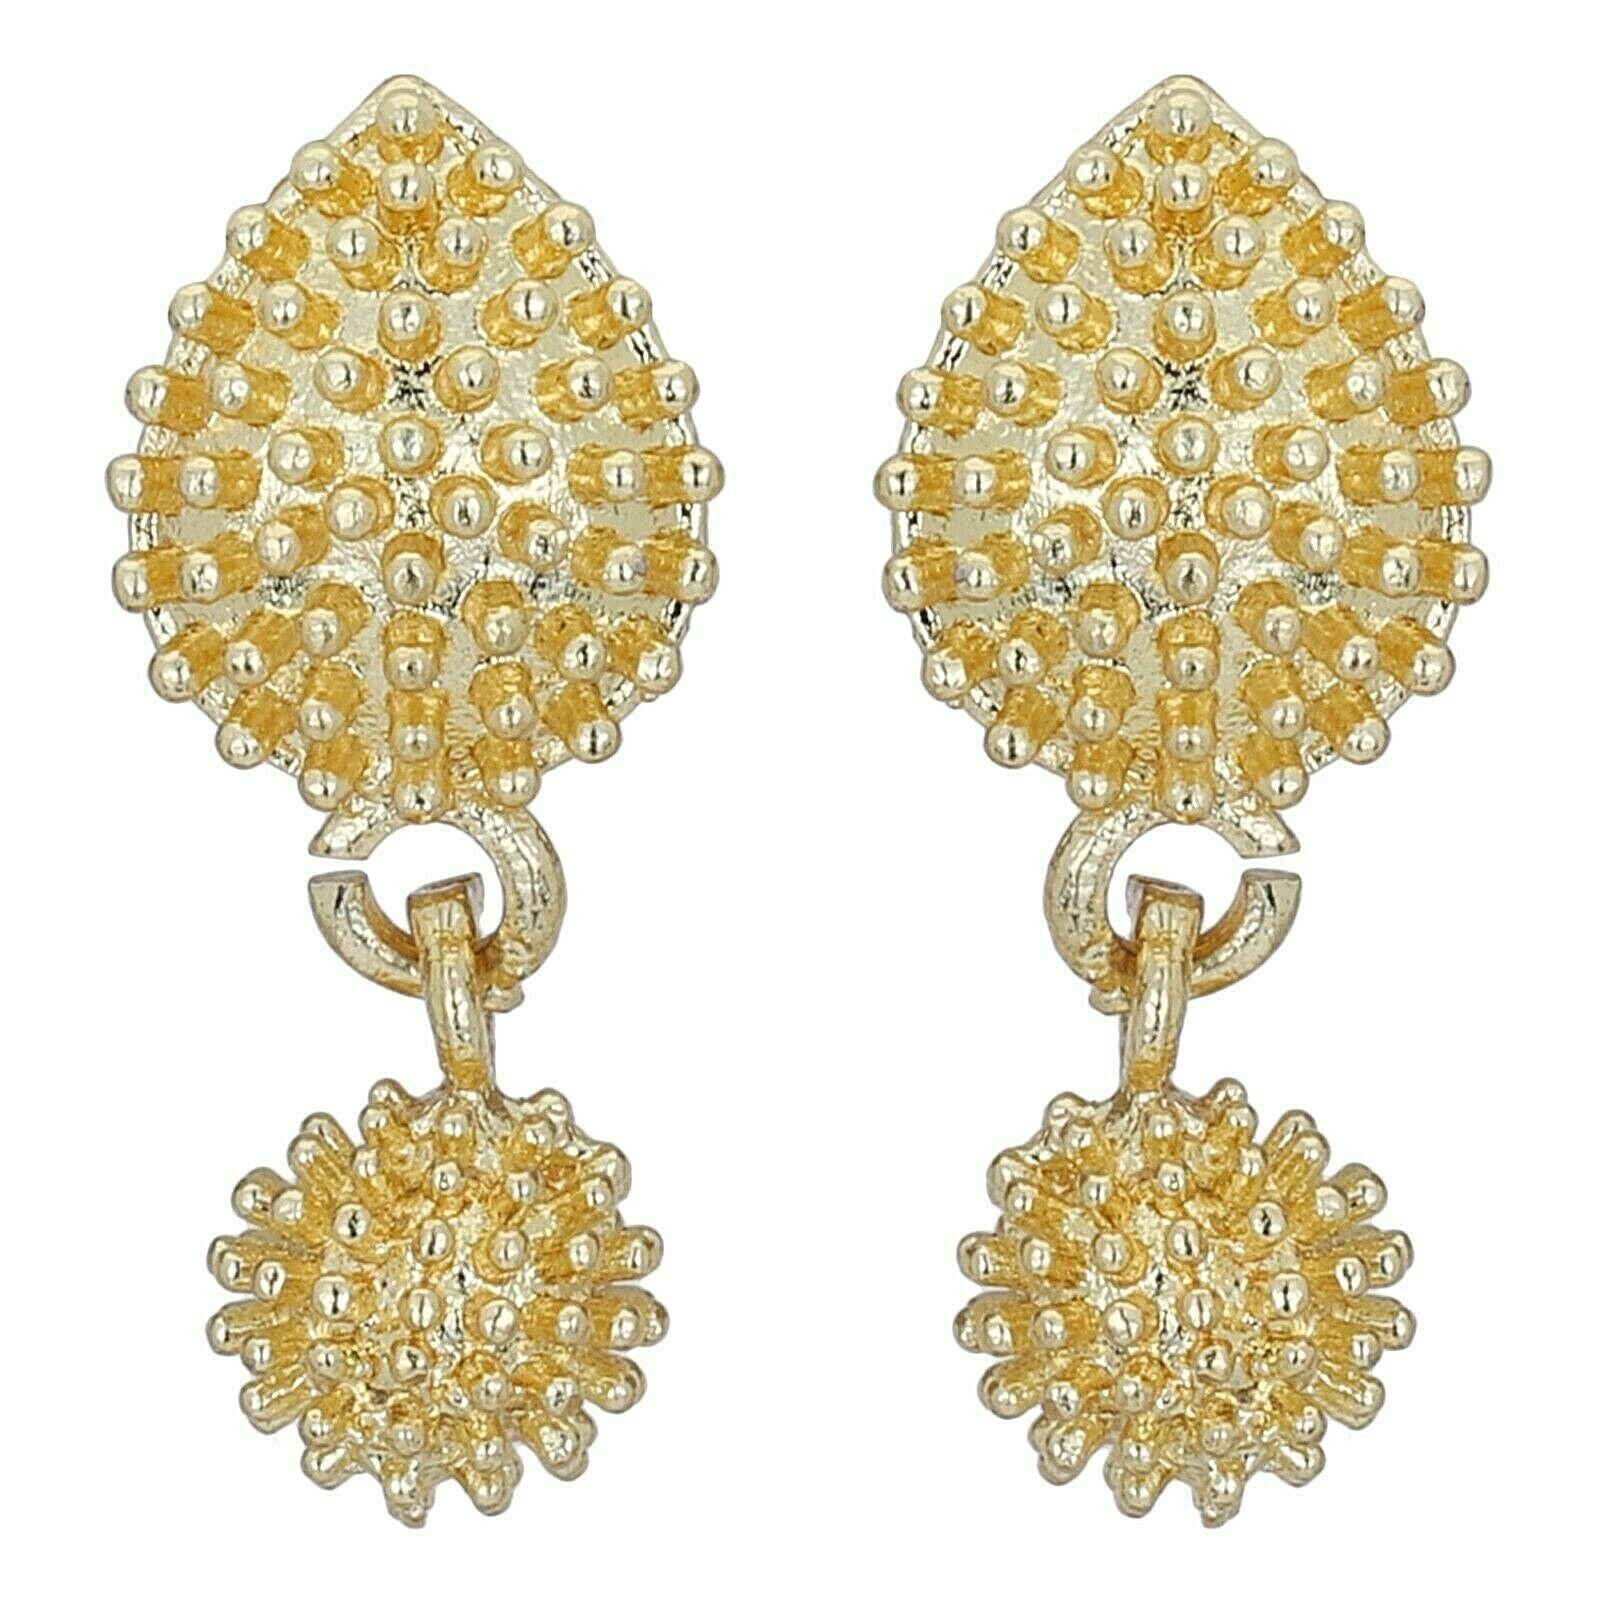 Indian Gold Plated Stud Screw Back Earrings Jewelry Women Traditional Wedding